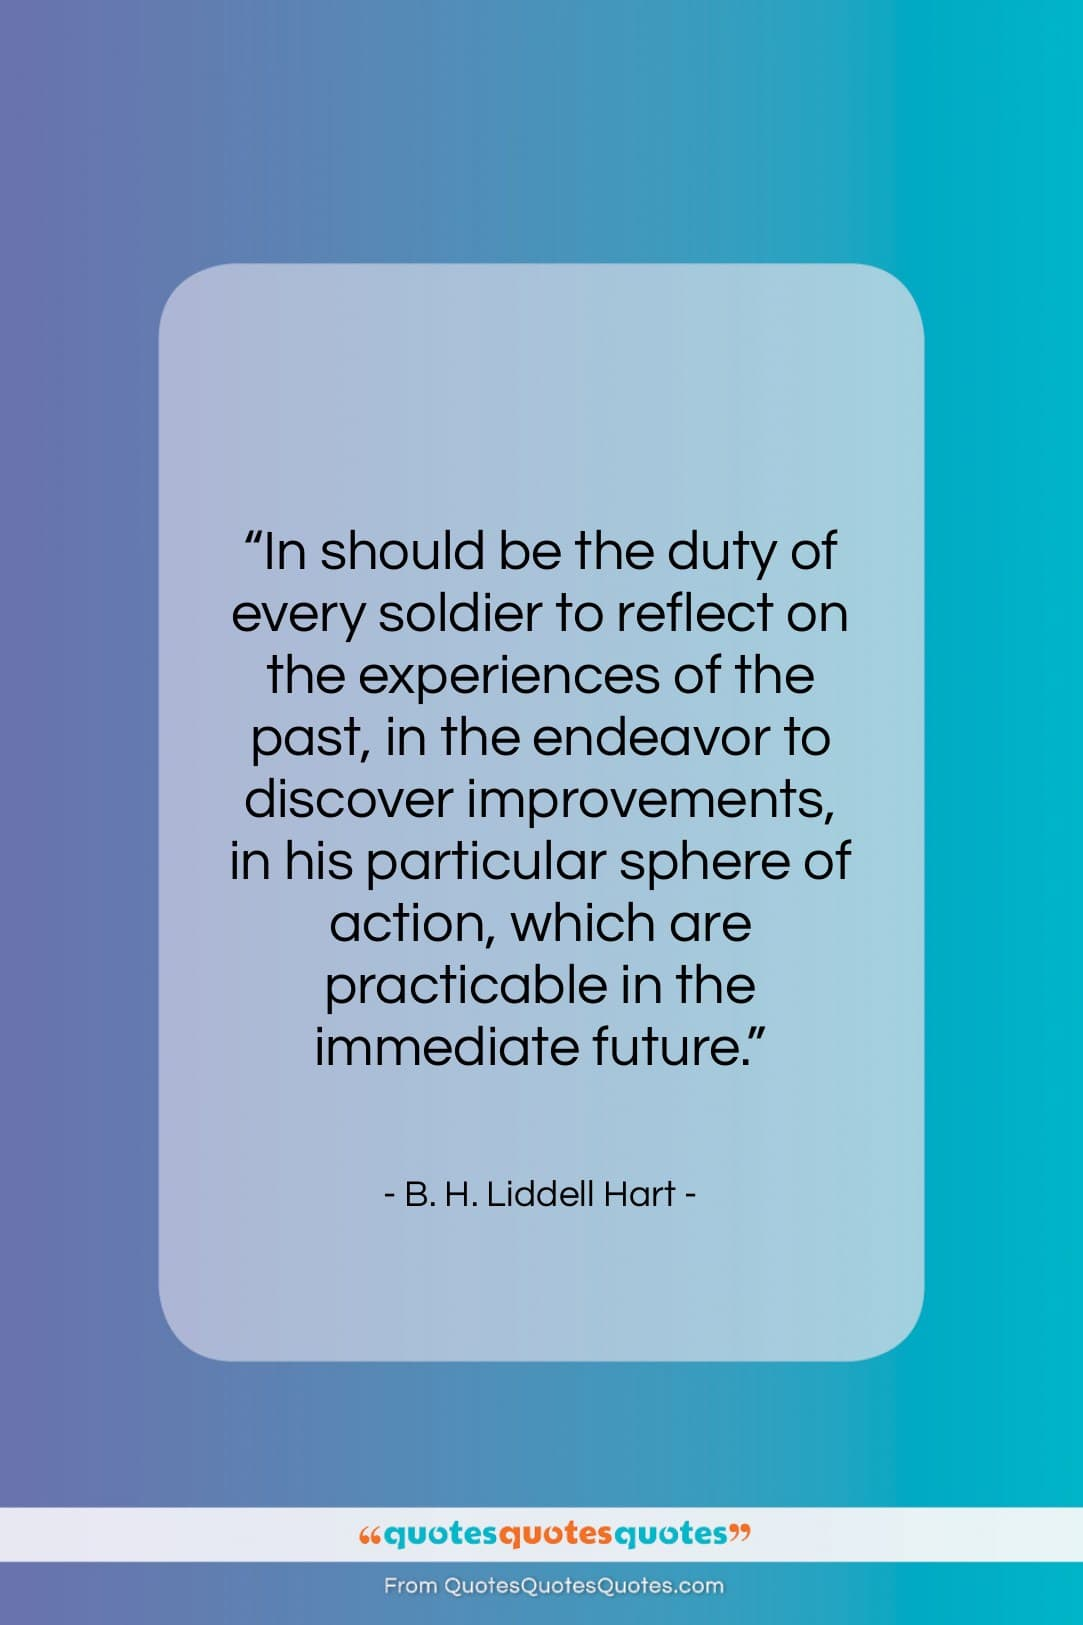 """B. H. Liddell Hart quote: """"In should be the duty of every…""""- at QuotesQuotesQuotes.com"""